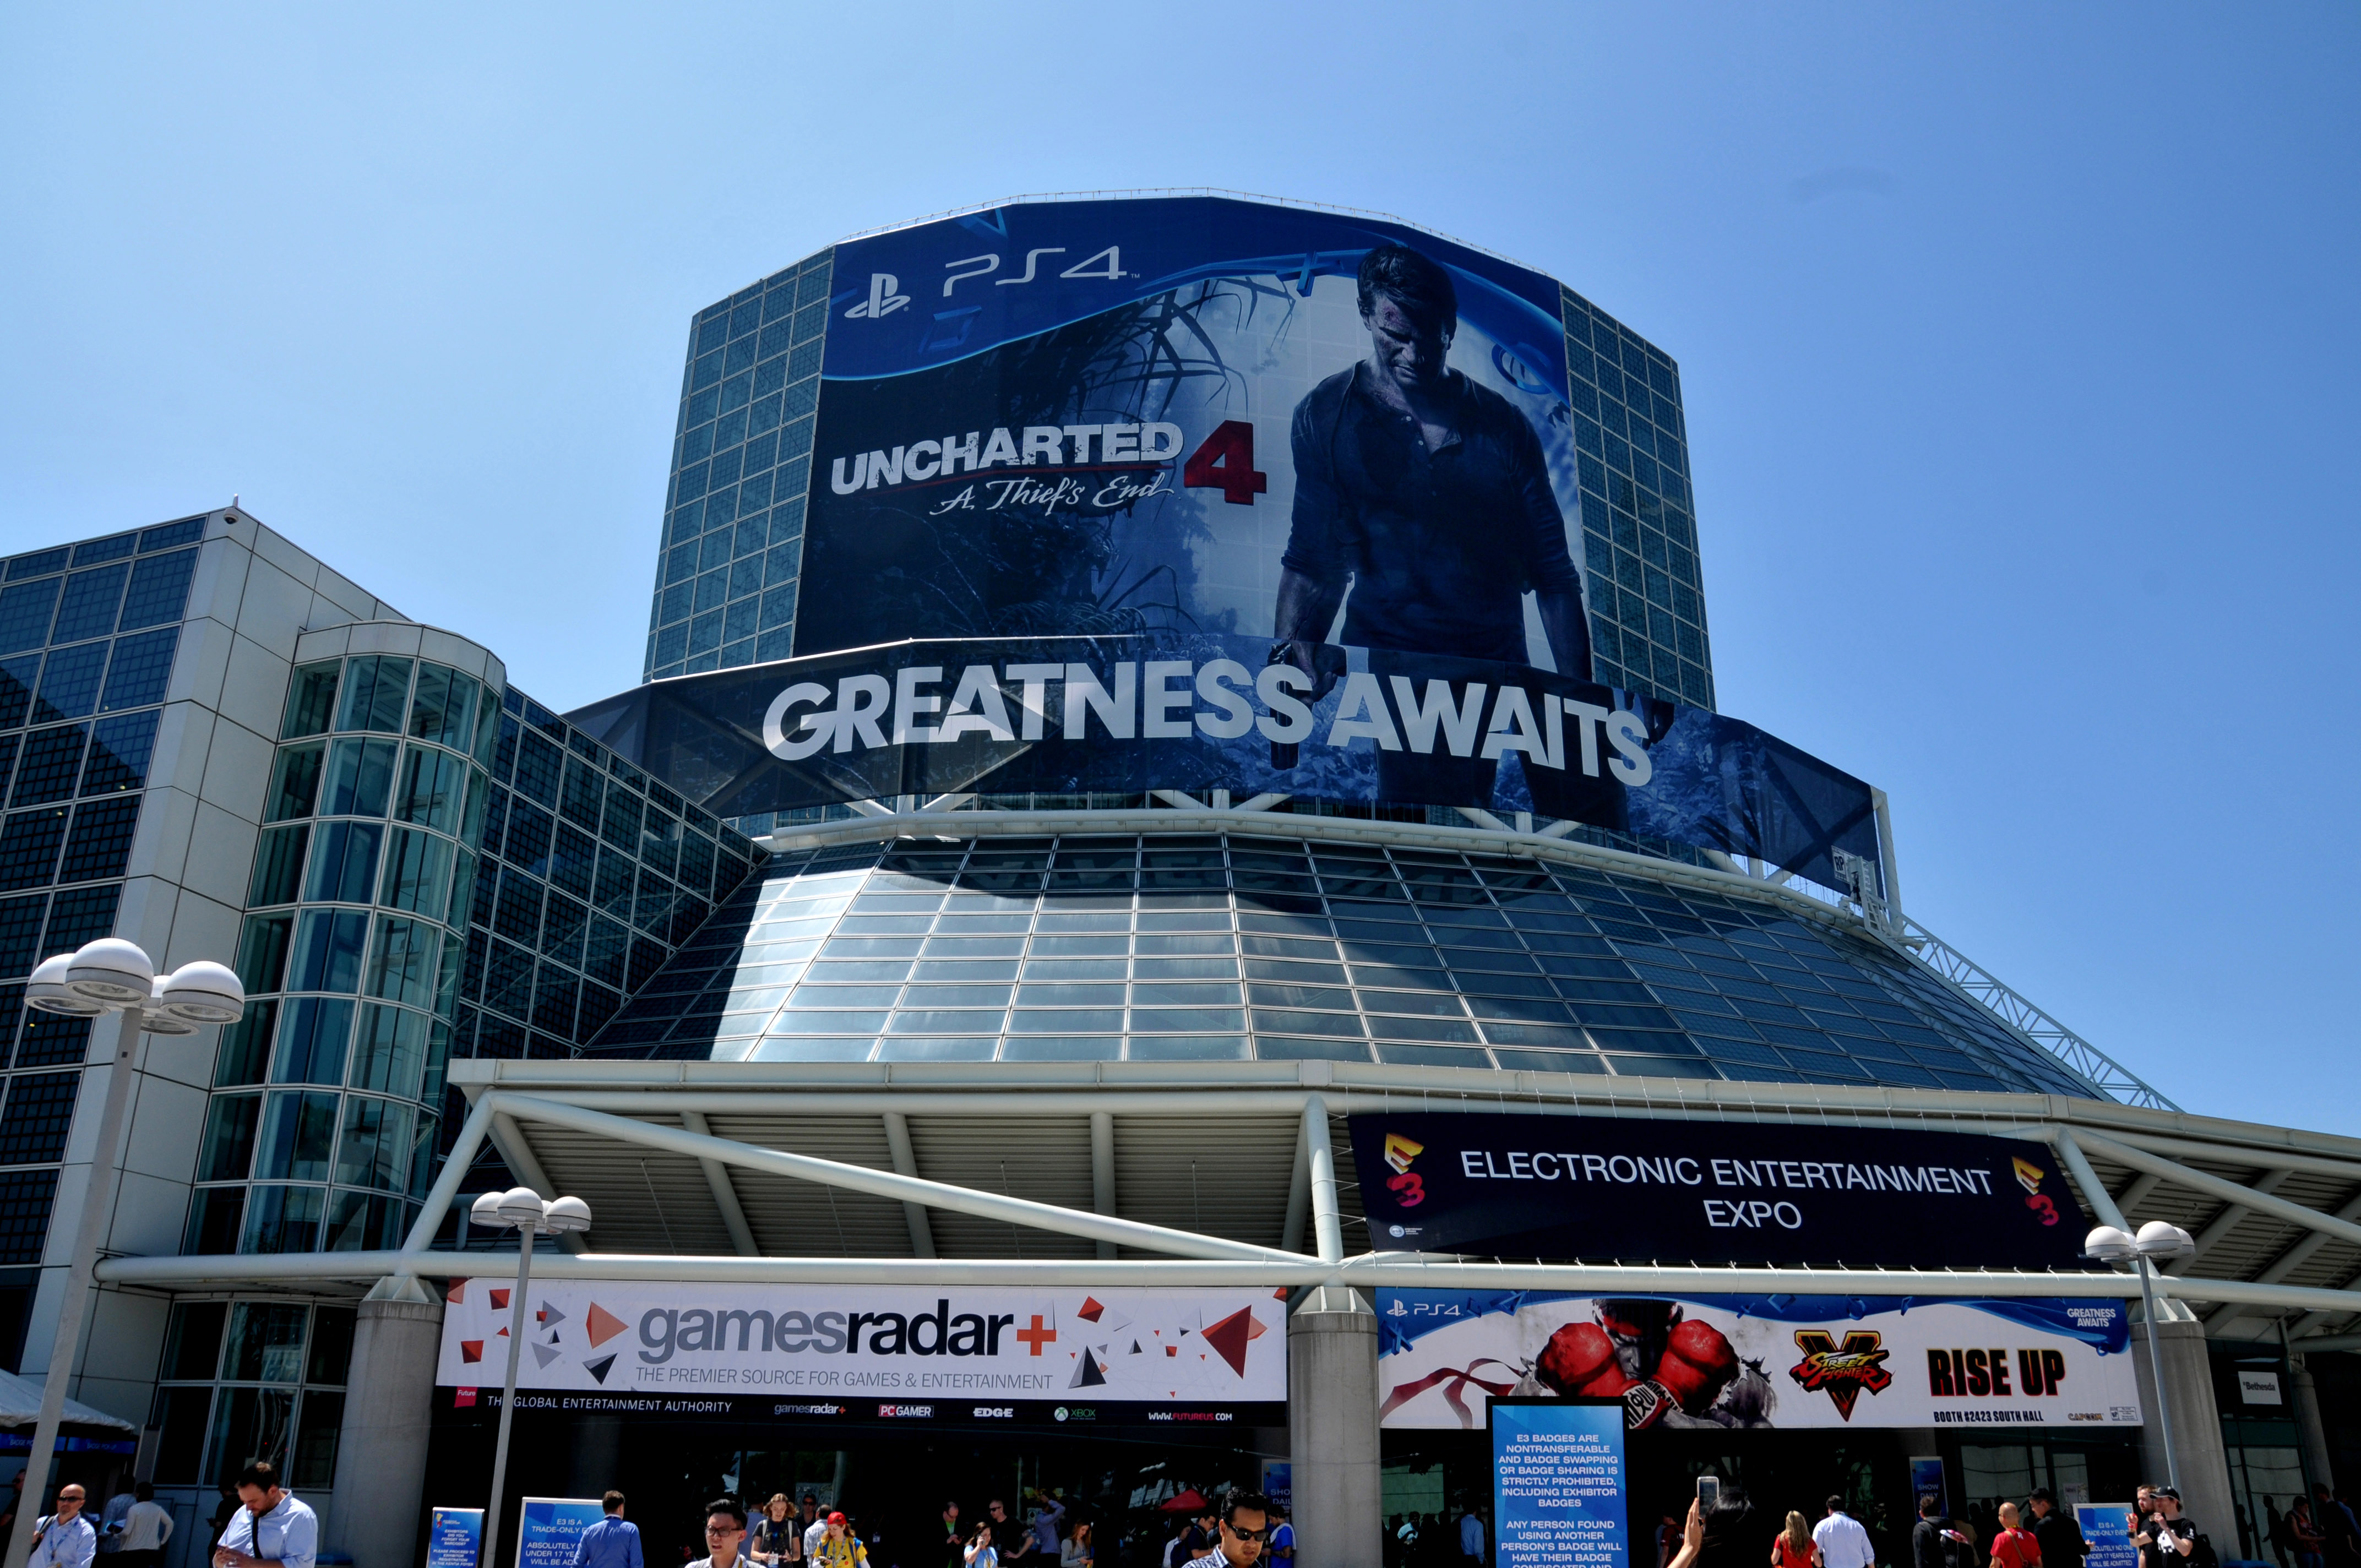 E3 Expo (Electronic Entertainment Exposition) at the Los Angeles Convention Center in Los Angeles, California on June 17, 2015